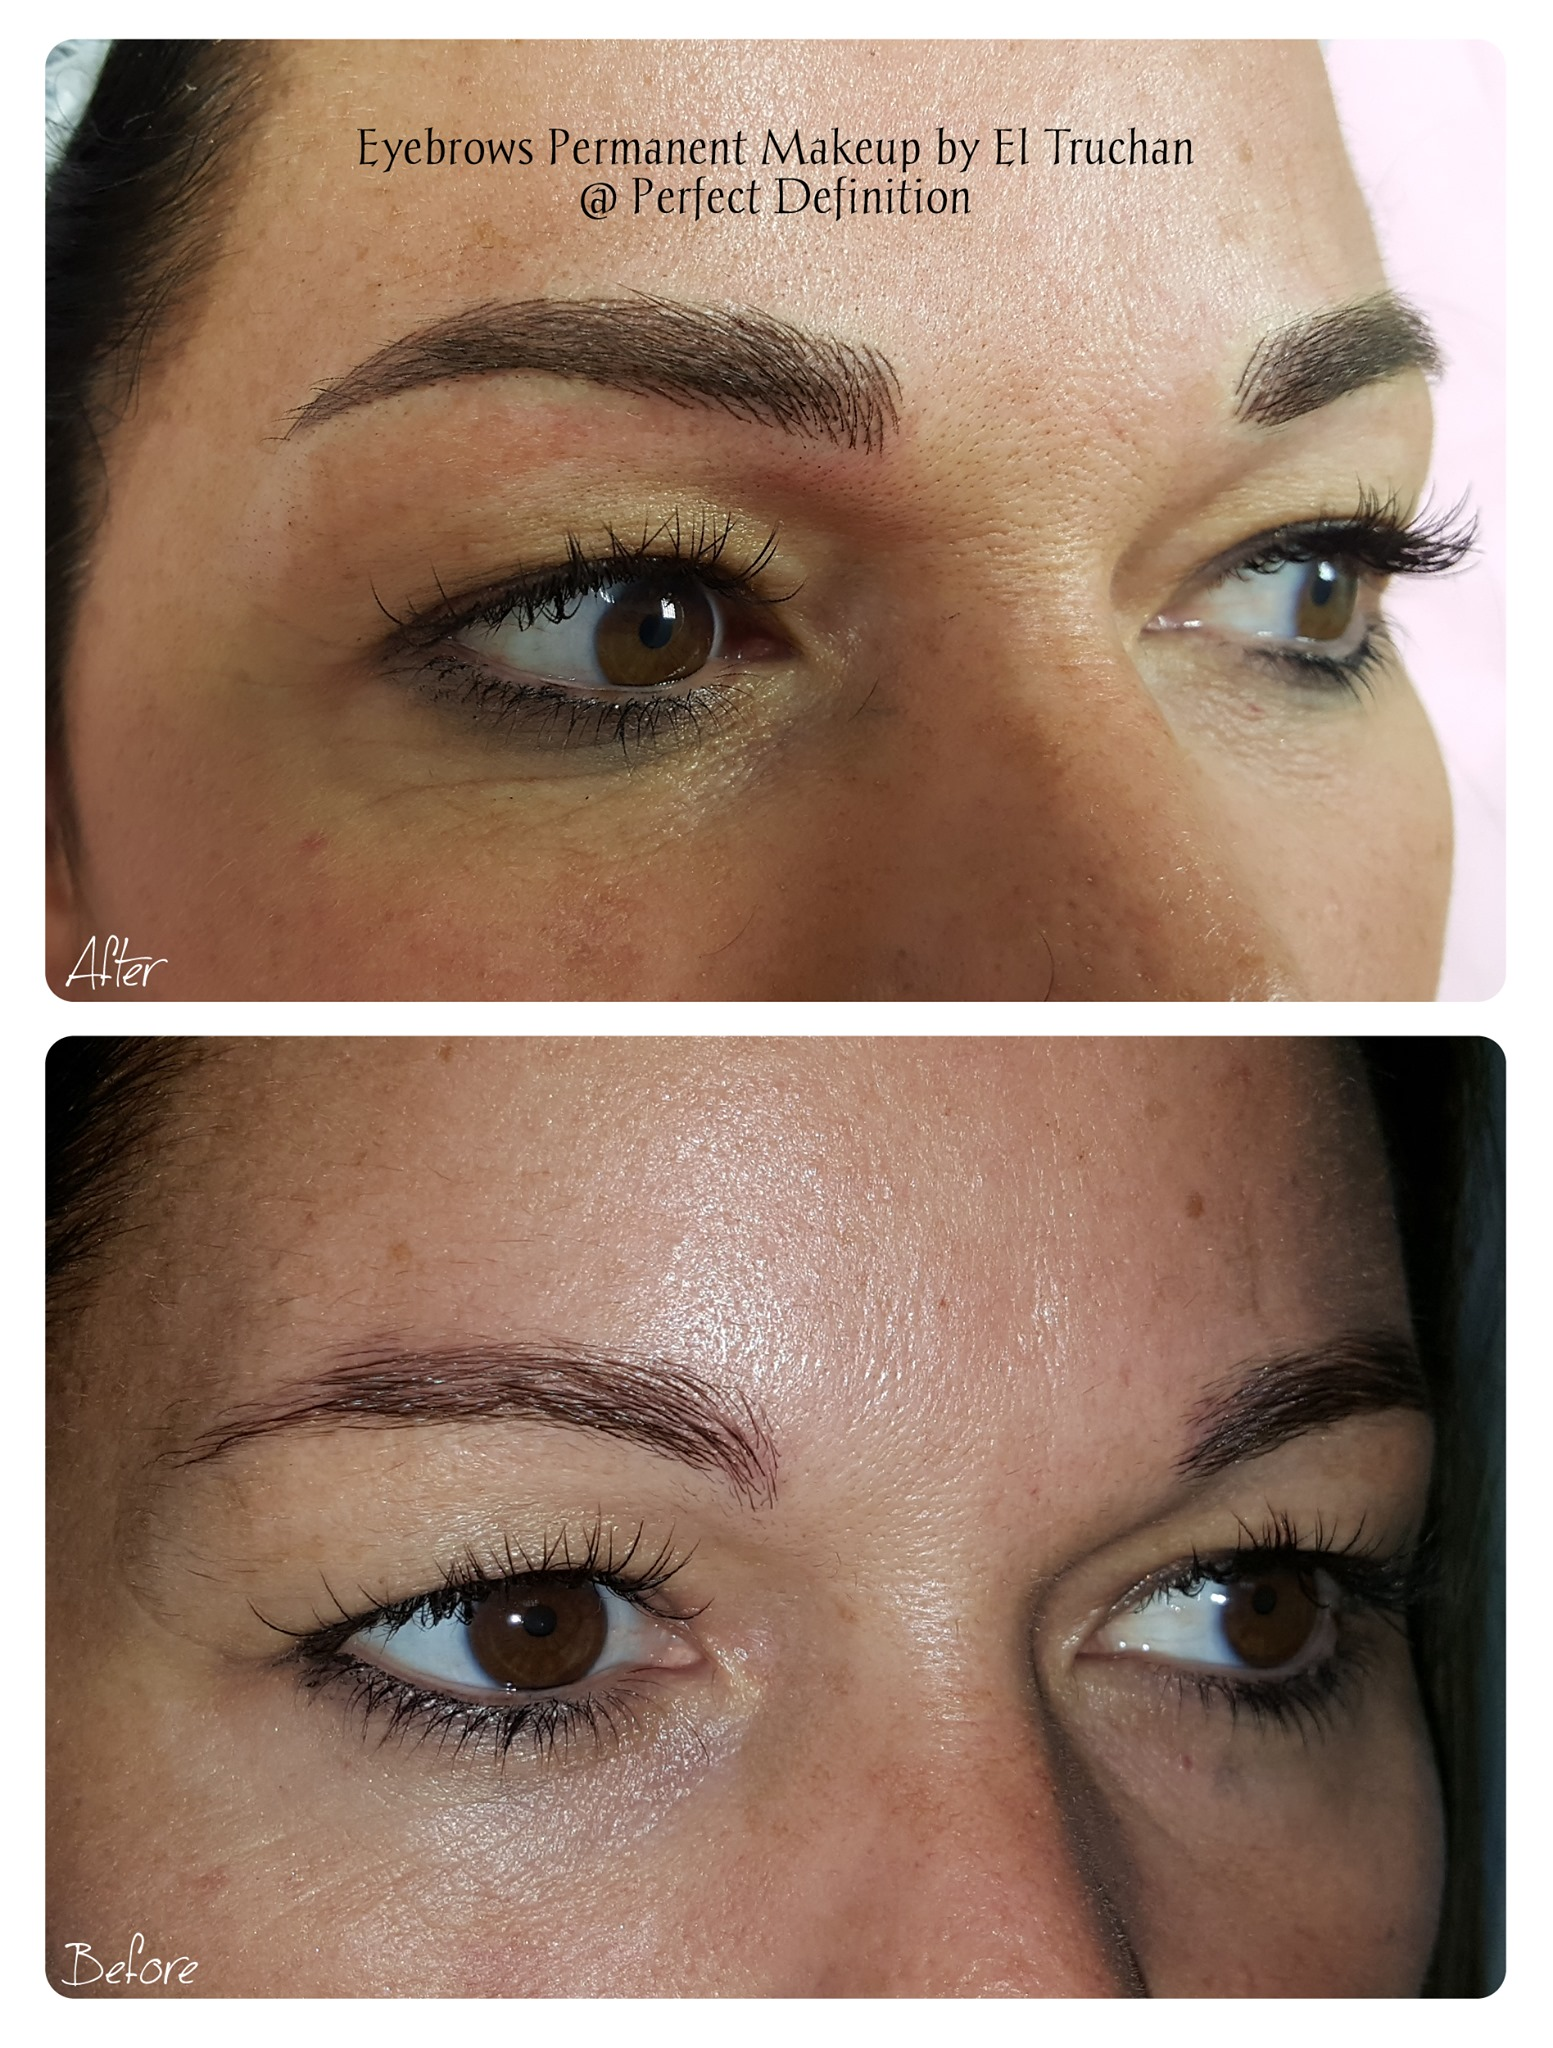 Eyebrows Permanent Makeup by El Truchan